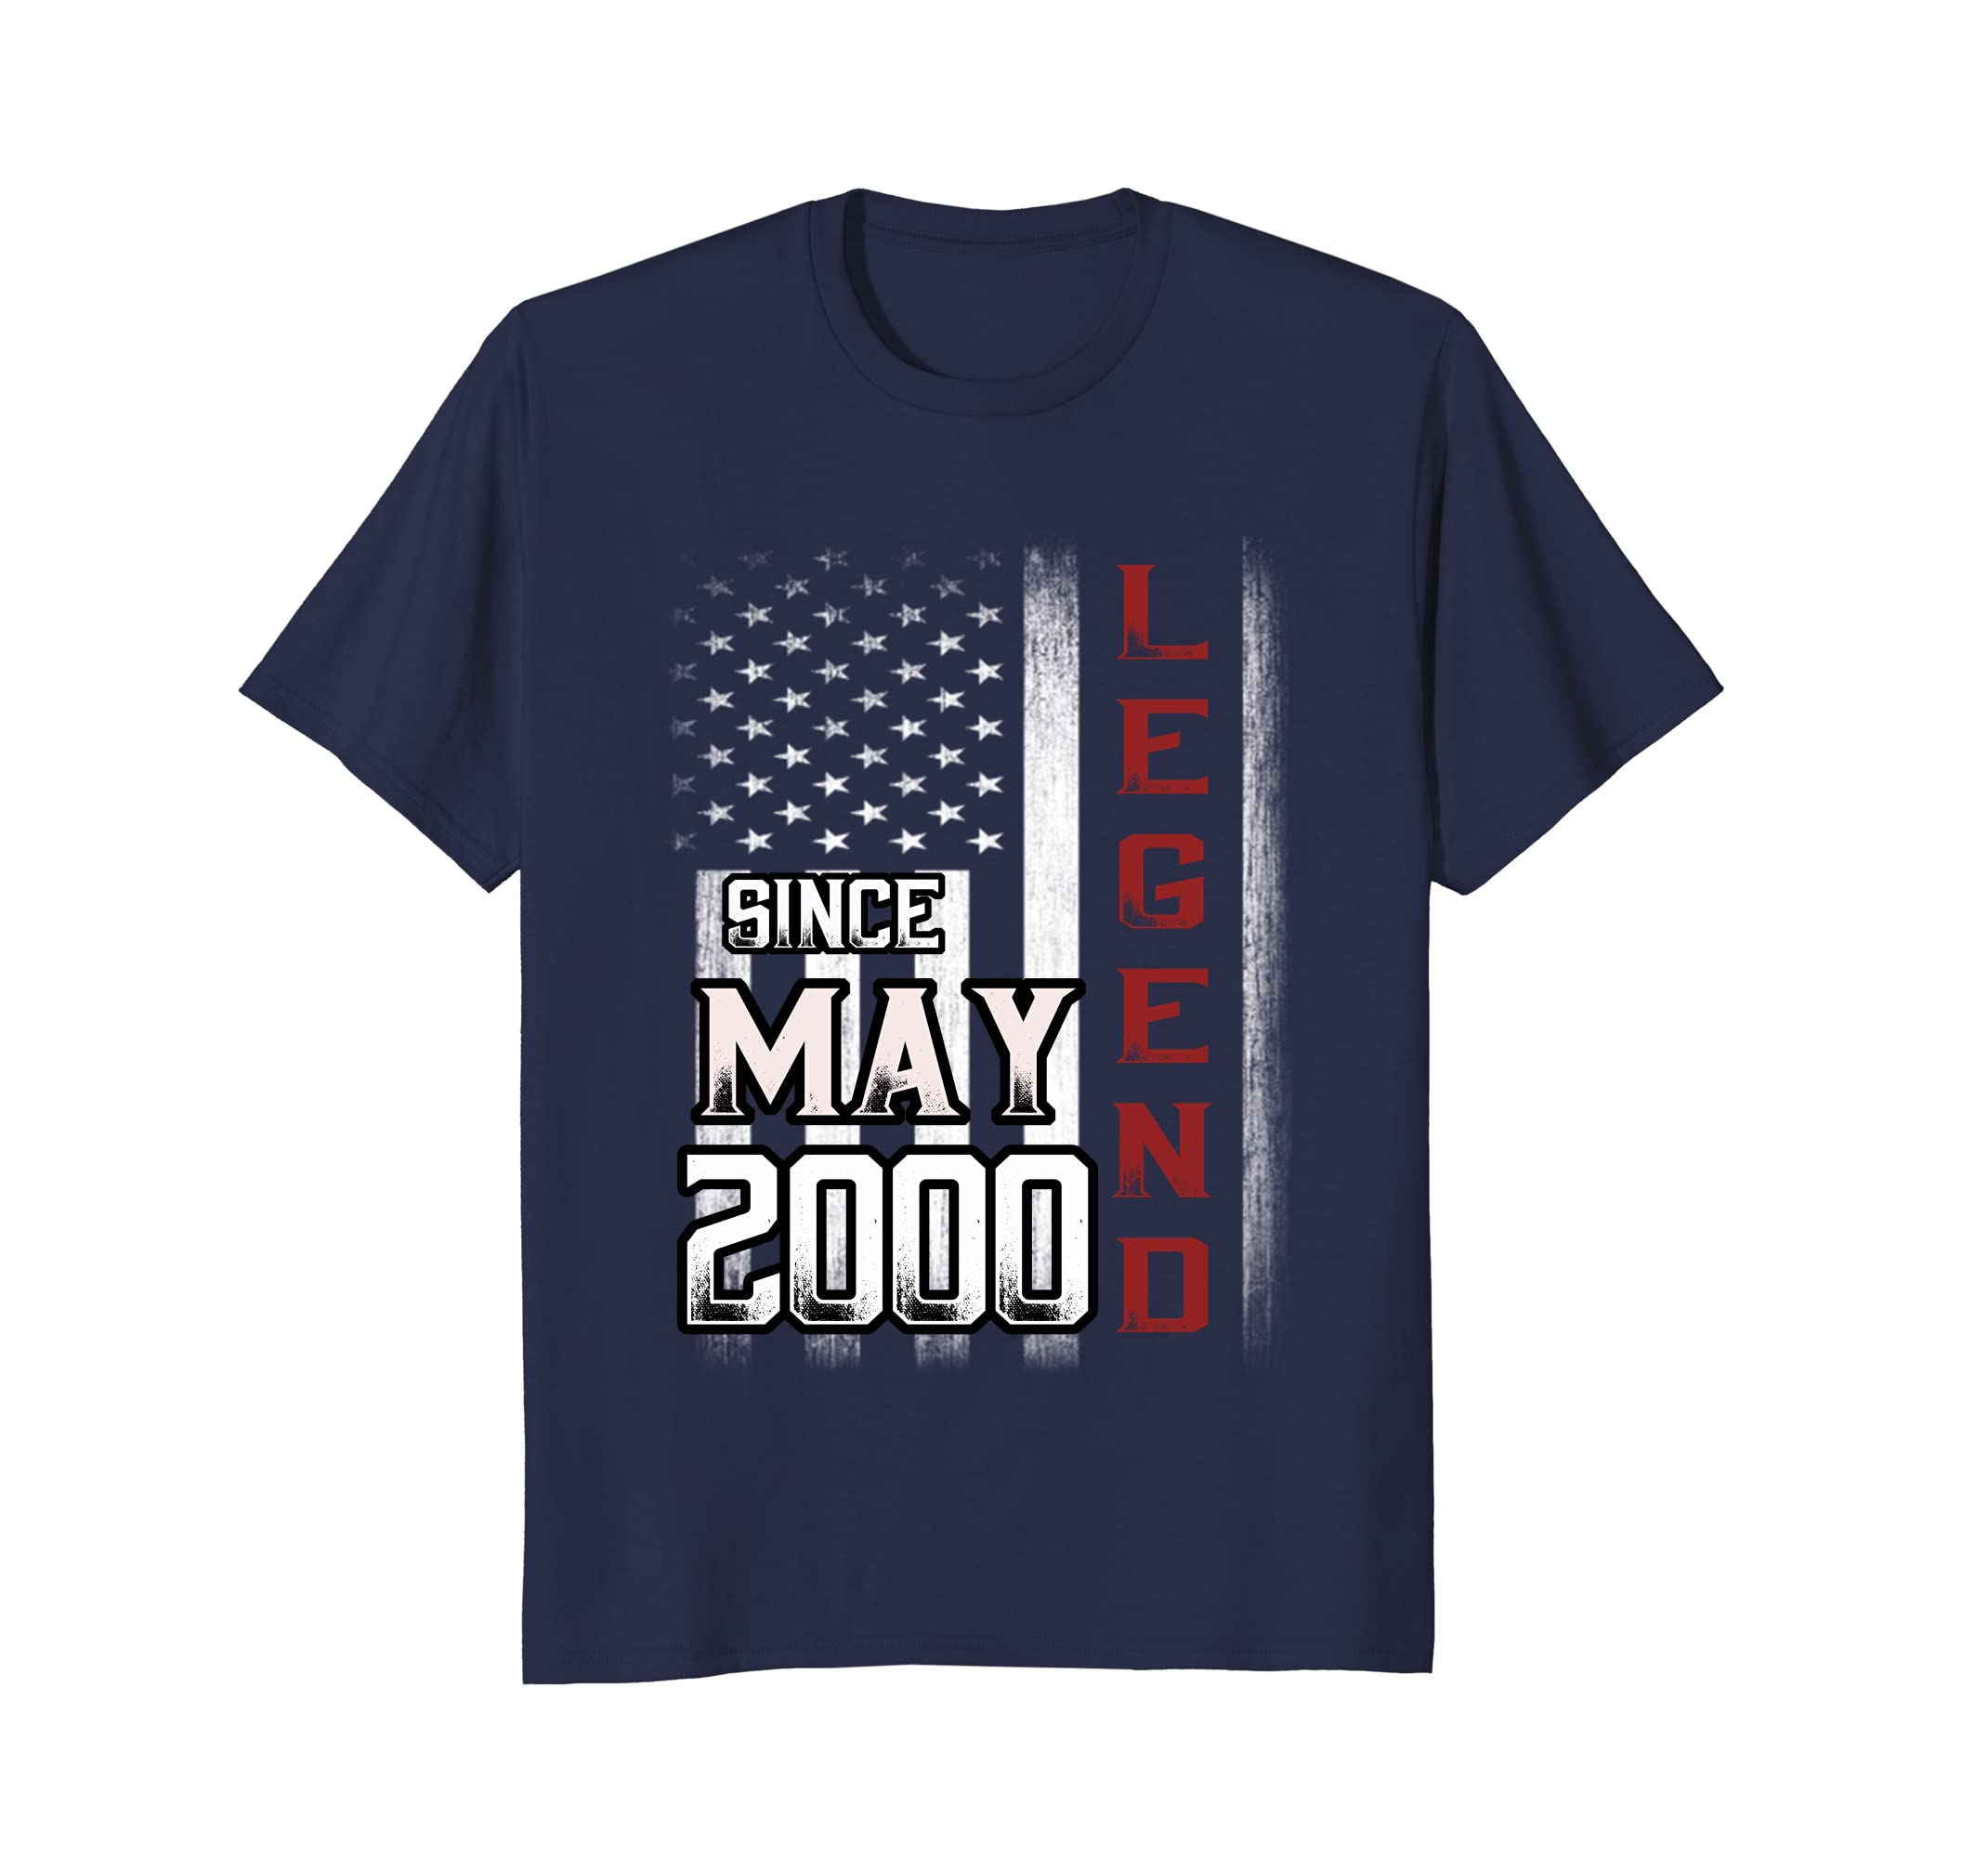 18th Birthday T-Shirt May 2000 Legends Vintage Flag Tee-alottee gift